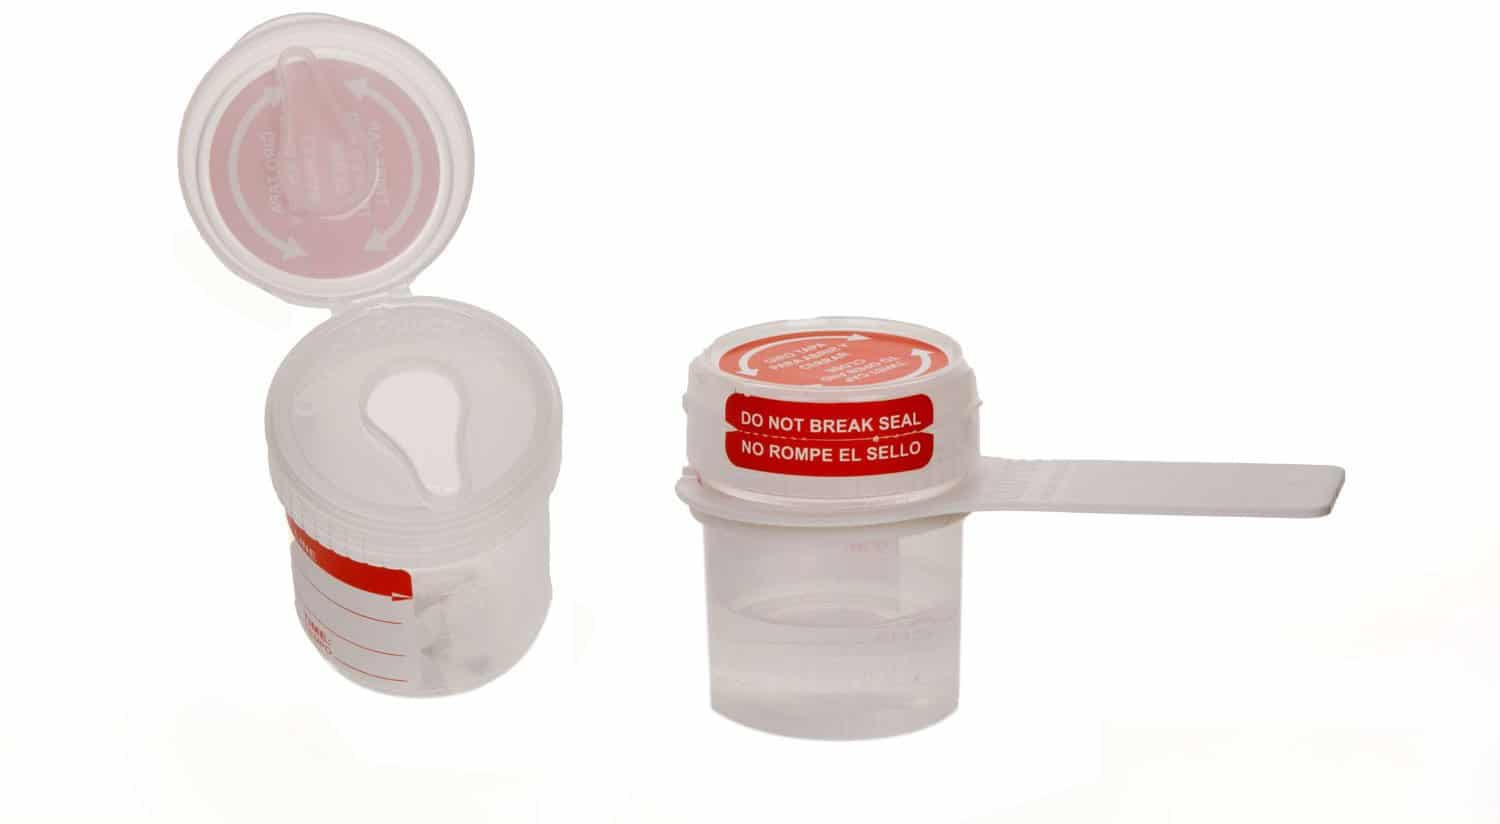 Urine-Collection-Cup-with-Infection-Control-Top